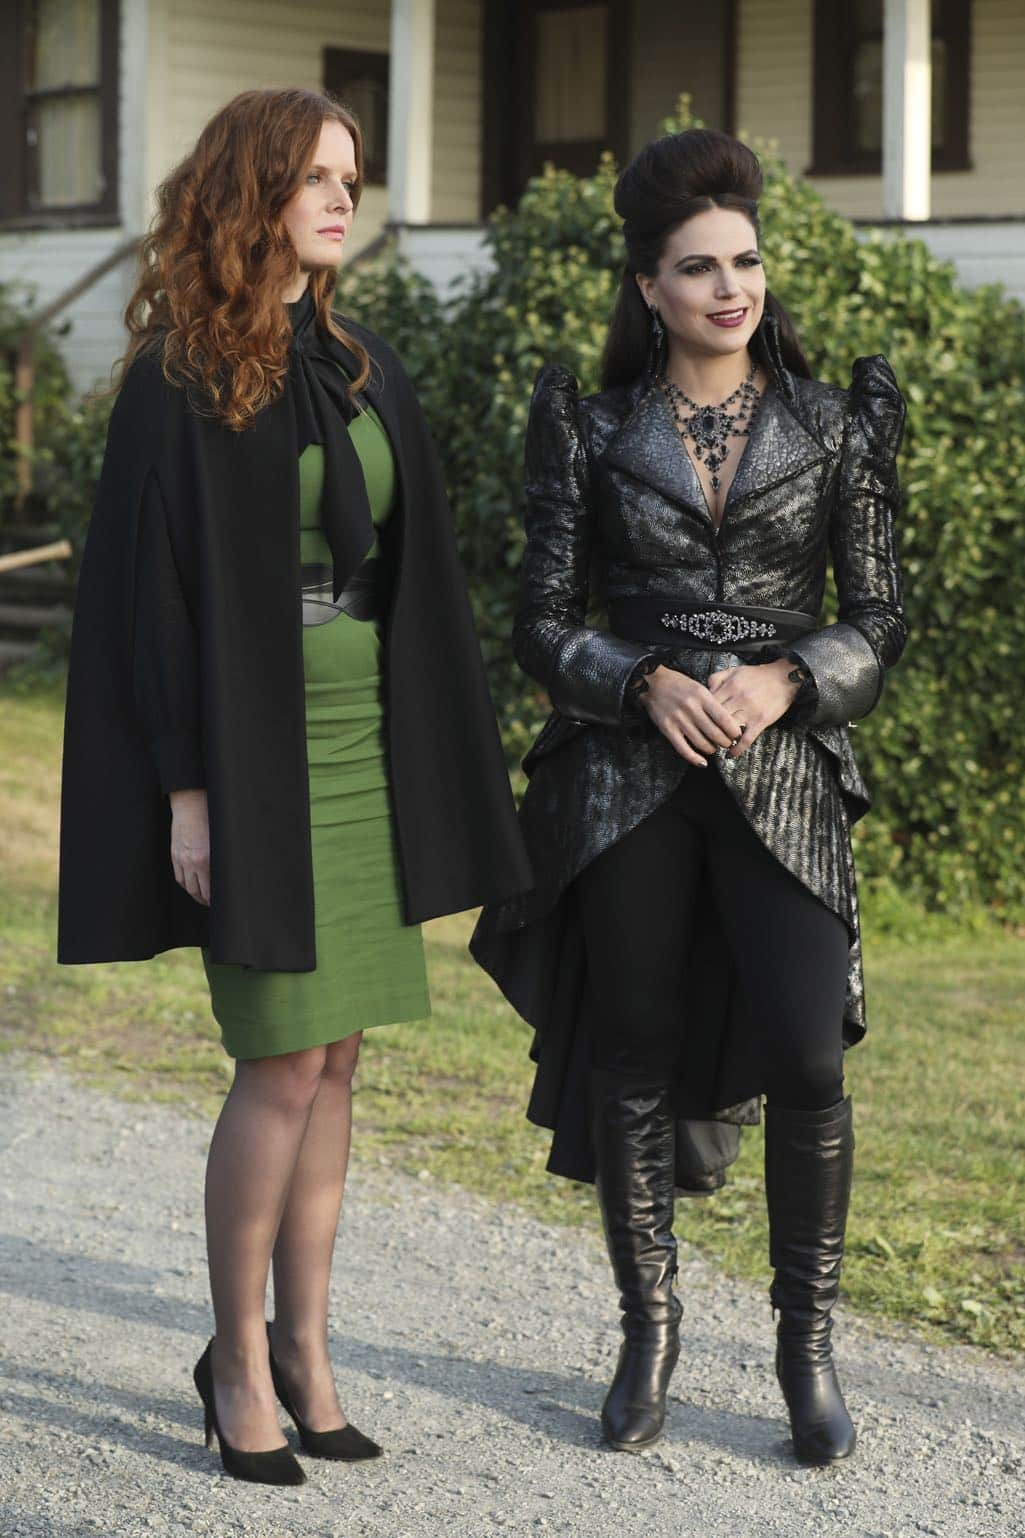 """ONCE UPON A TIME - """"Dark Waters"""" - Emma tries to convince Aladdin to work with Jasmine to help Agrabah, while Regina teams up with Snow and David to free Archie from Zelena. The Evil Queen sows suspicion between Henry and Hook, even as Mr. Gold reminds her of his most important lesson. Meanwhile, in the past, Hook finds himself kidnapped by the mysterious Captain Nemo and held captive inside his legendary submarine, the Nautilus, on """"Once Upon a Time,"""" SUNDAY, OCTOBER 30 (8:00-9:00 p.m. EDT), on the ABC Television Network. (ABC/Jack Rowand) REBECCA MADER, LANA PARRILLA"""